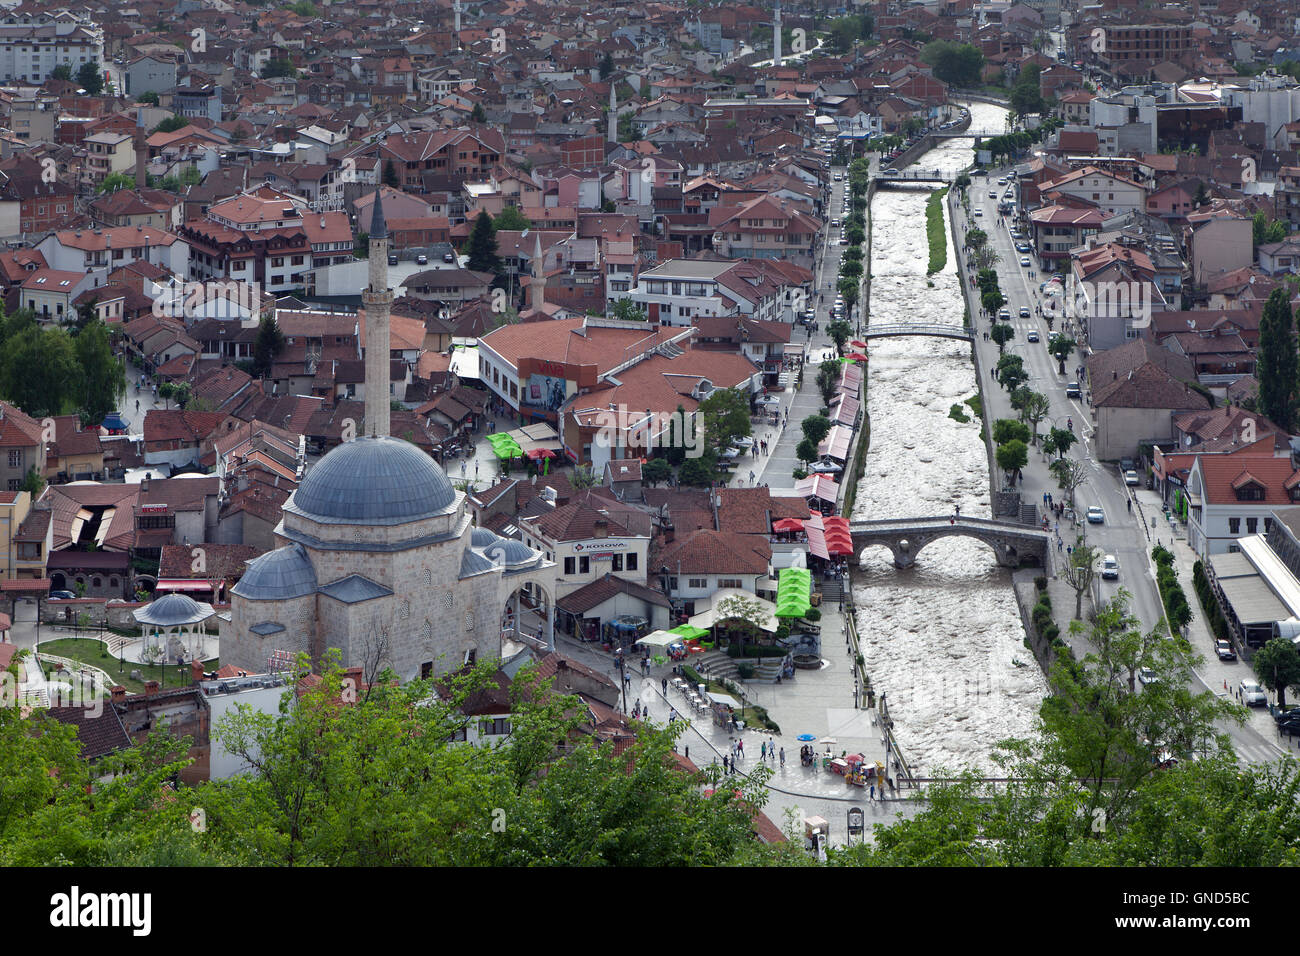 Prizren, Kosovo - May 6, 2015 : Top view of the historic city of Prizren, second largest city of Kosovo - Stock Image